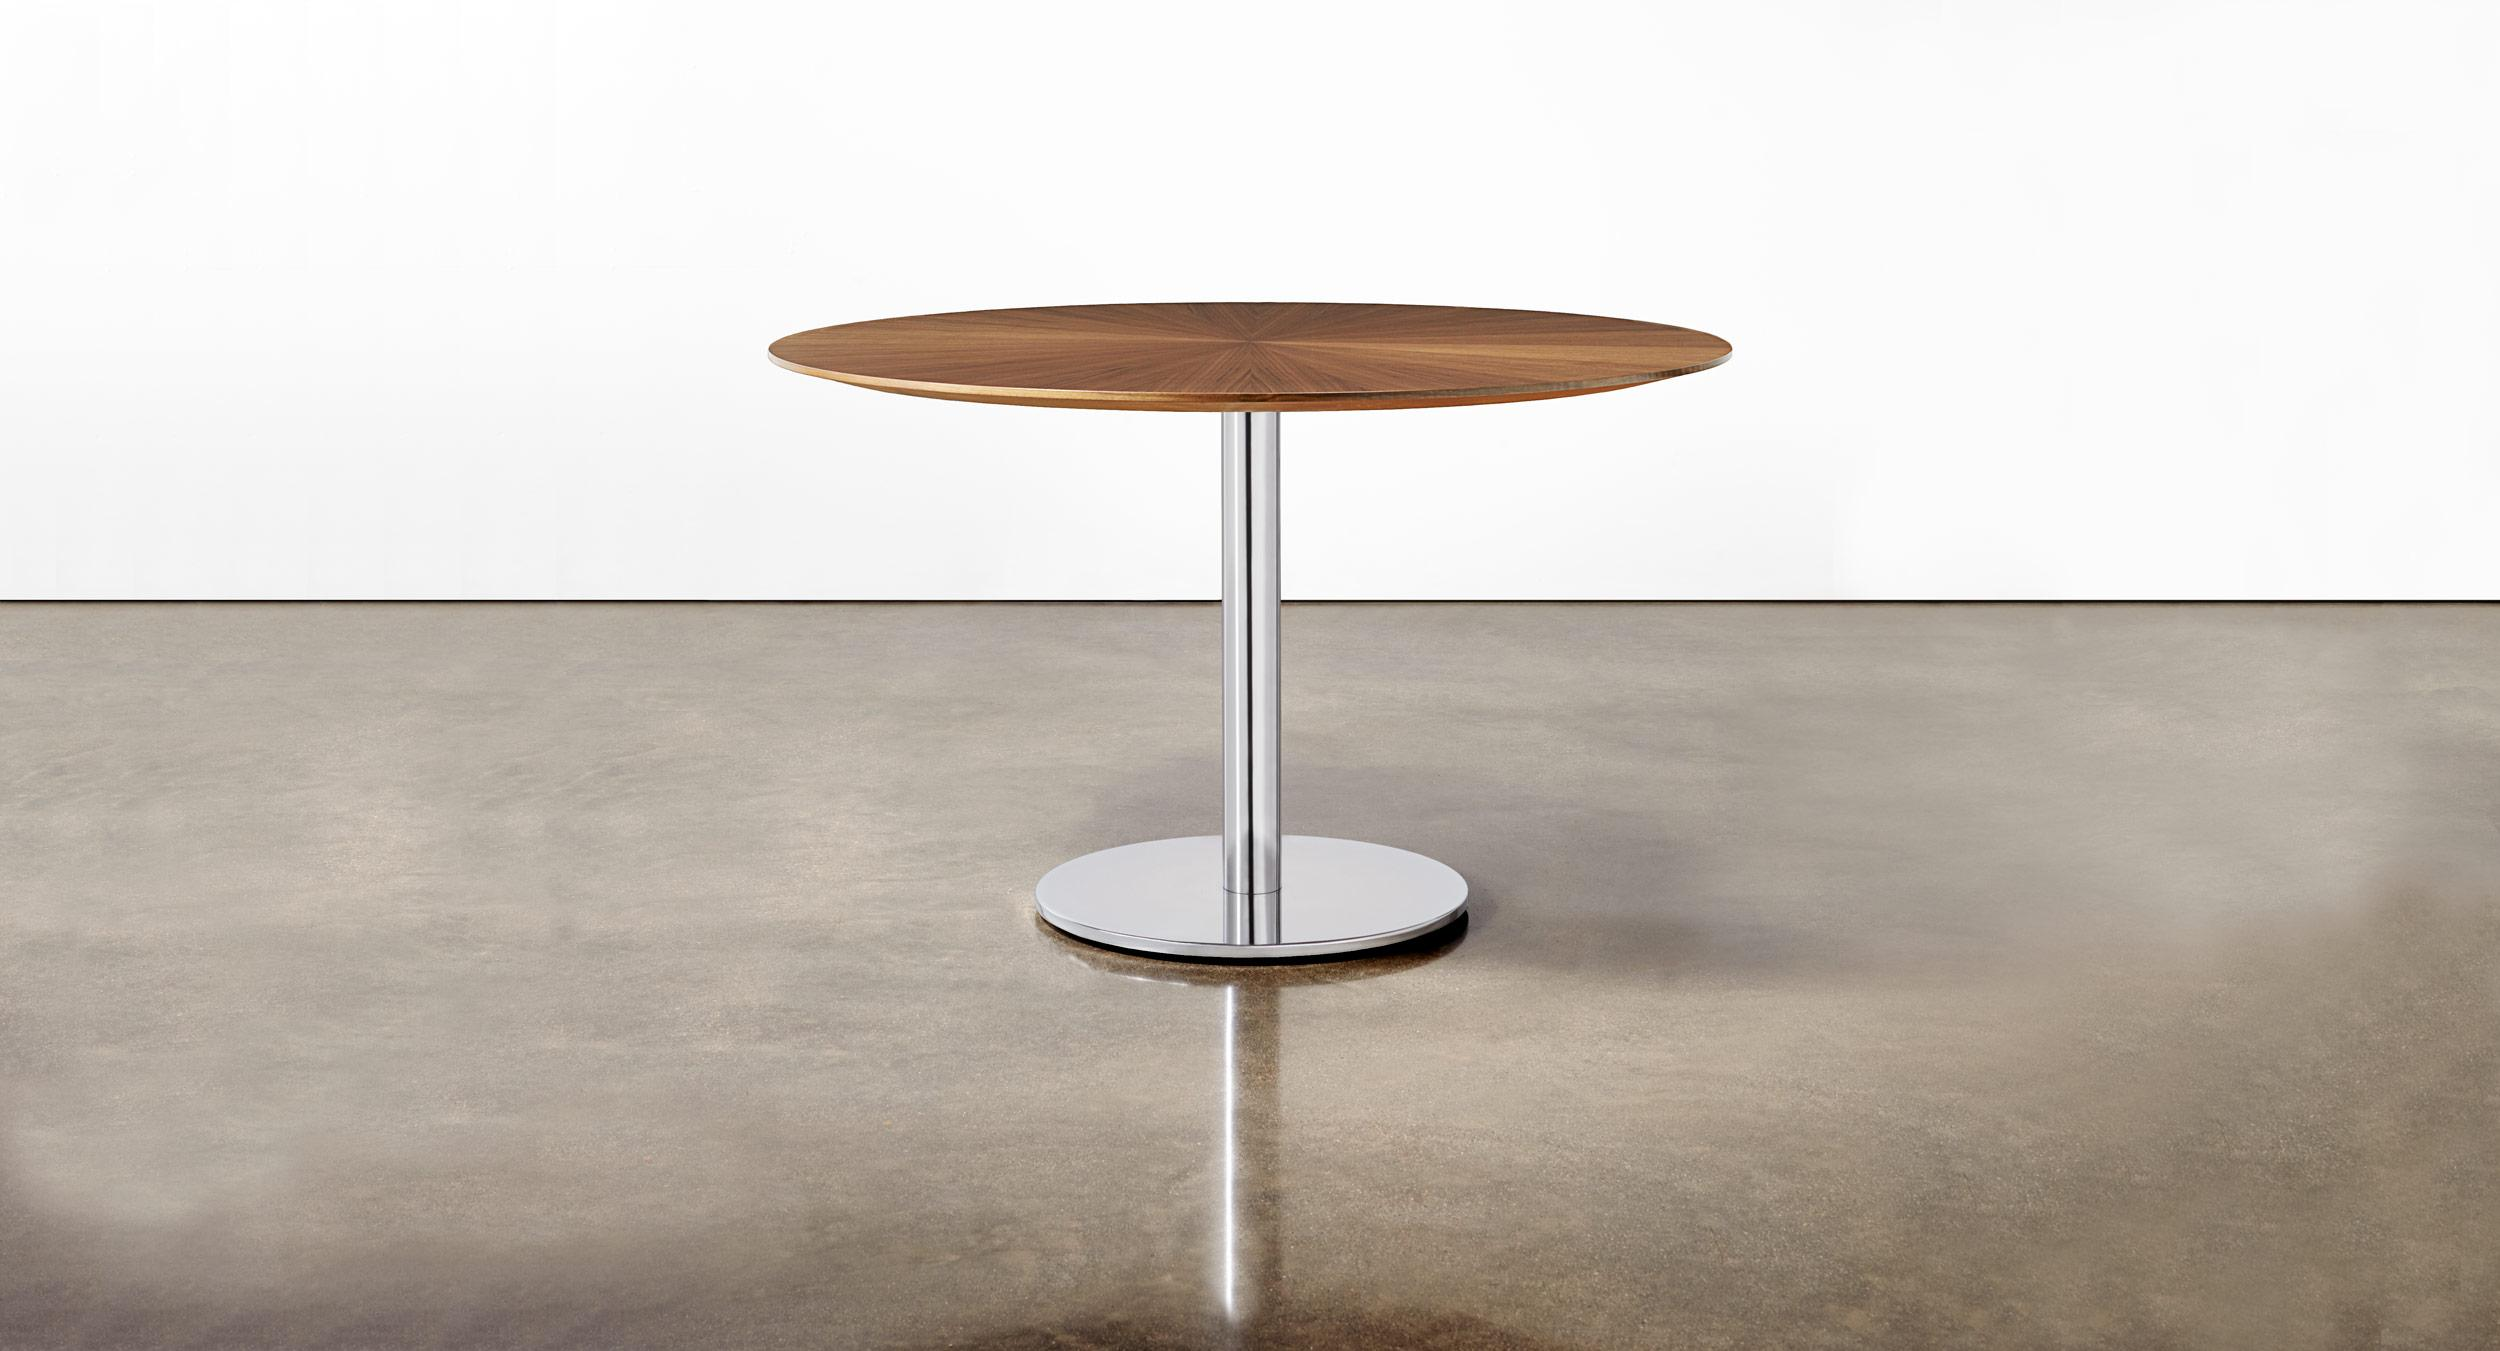 Sunburst veneer table with Disc base